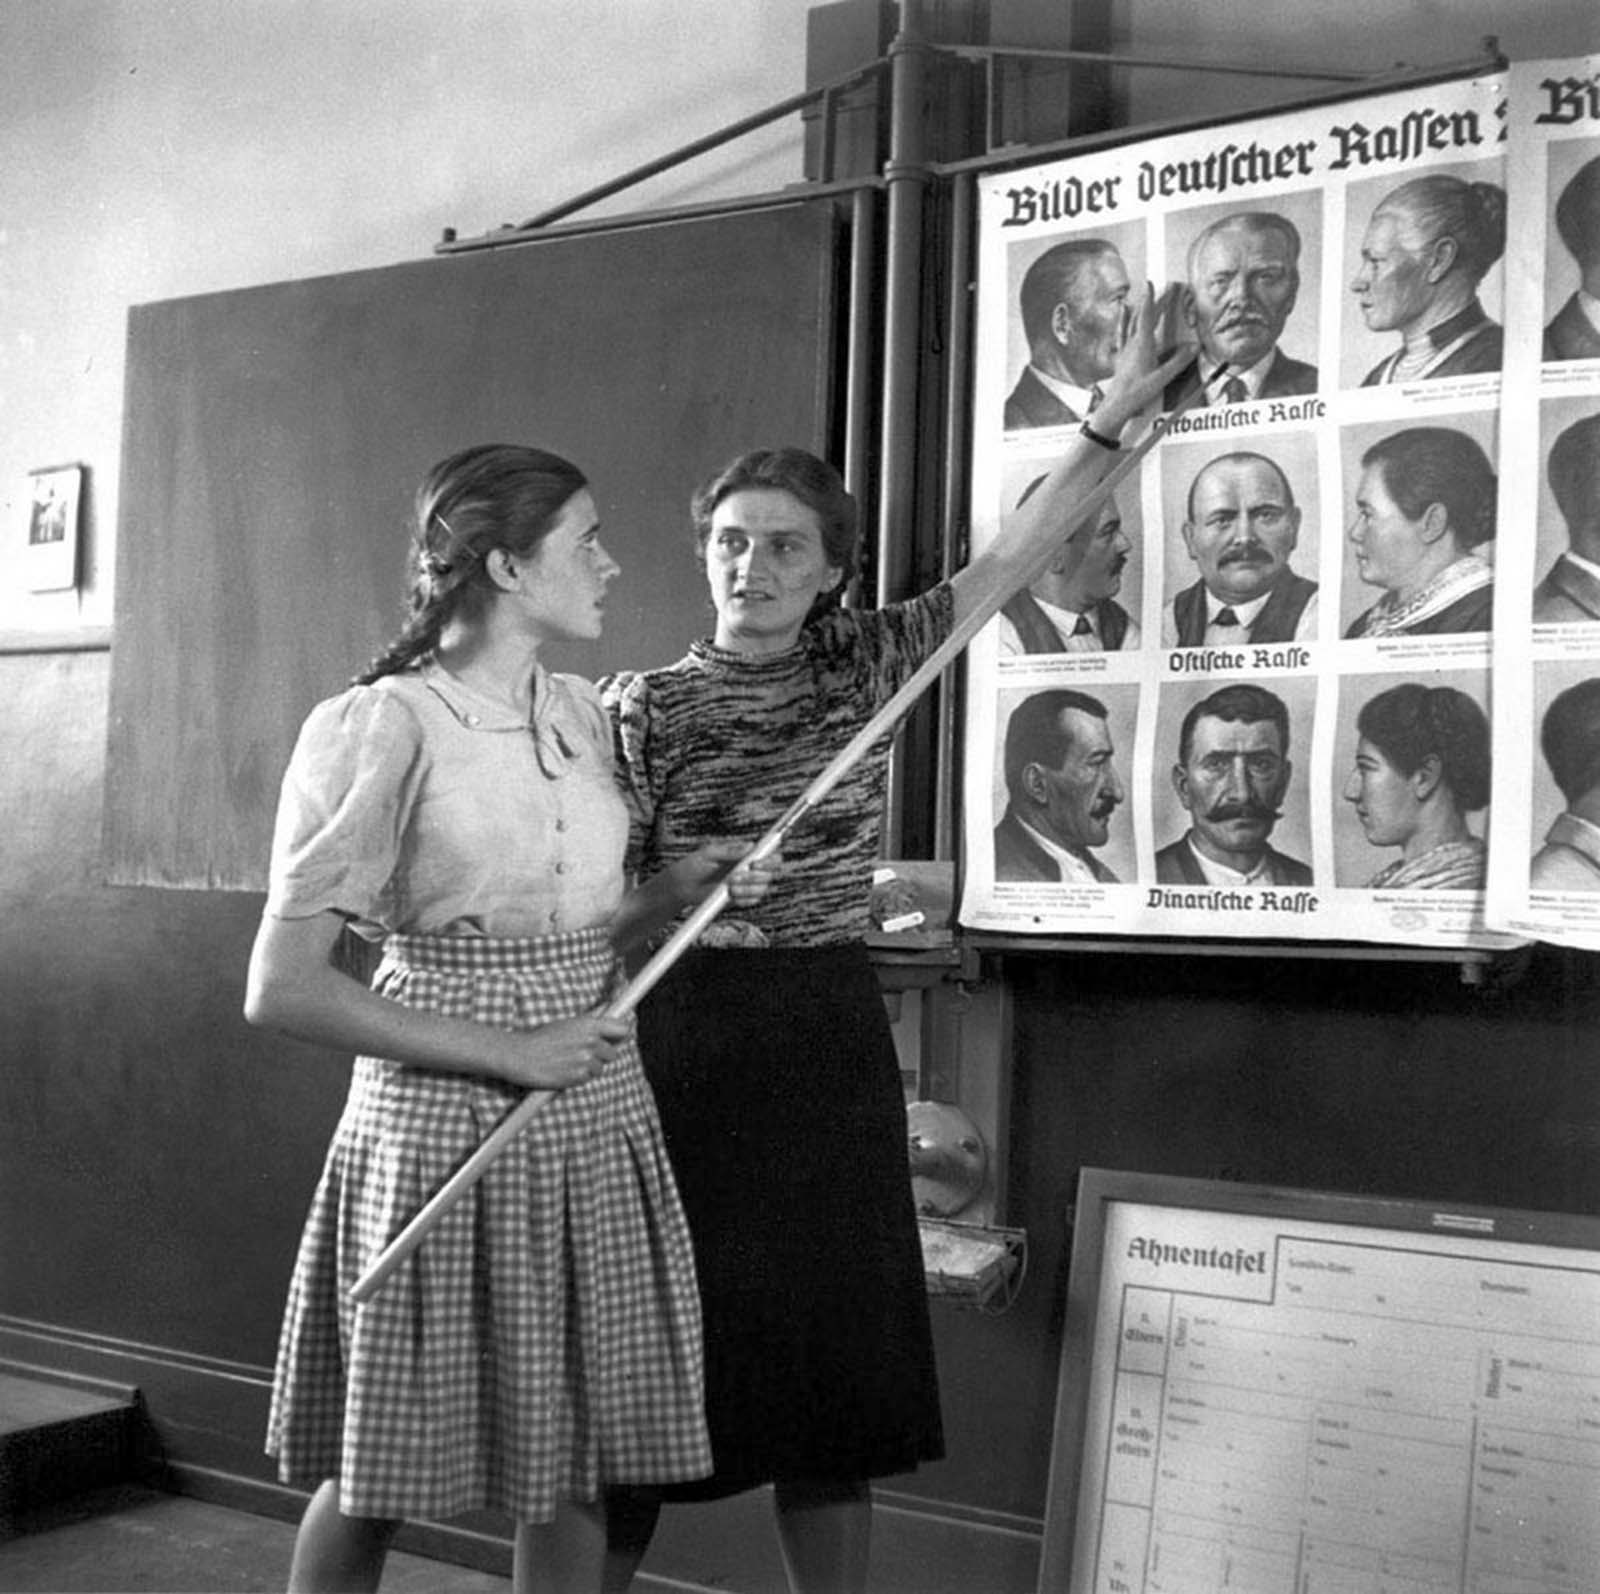 German students taking part in race education classes, 1943.